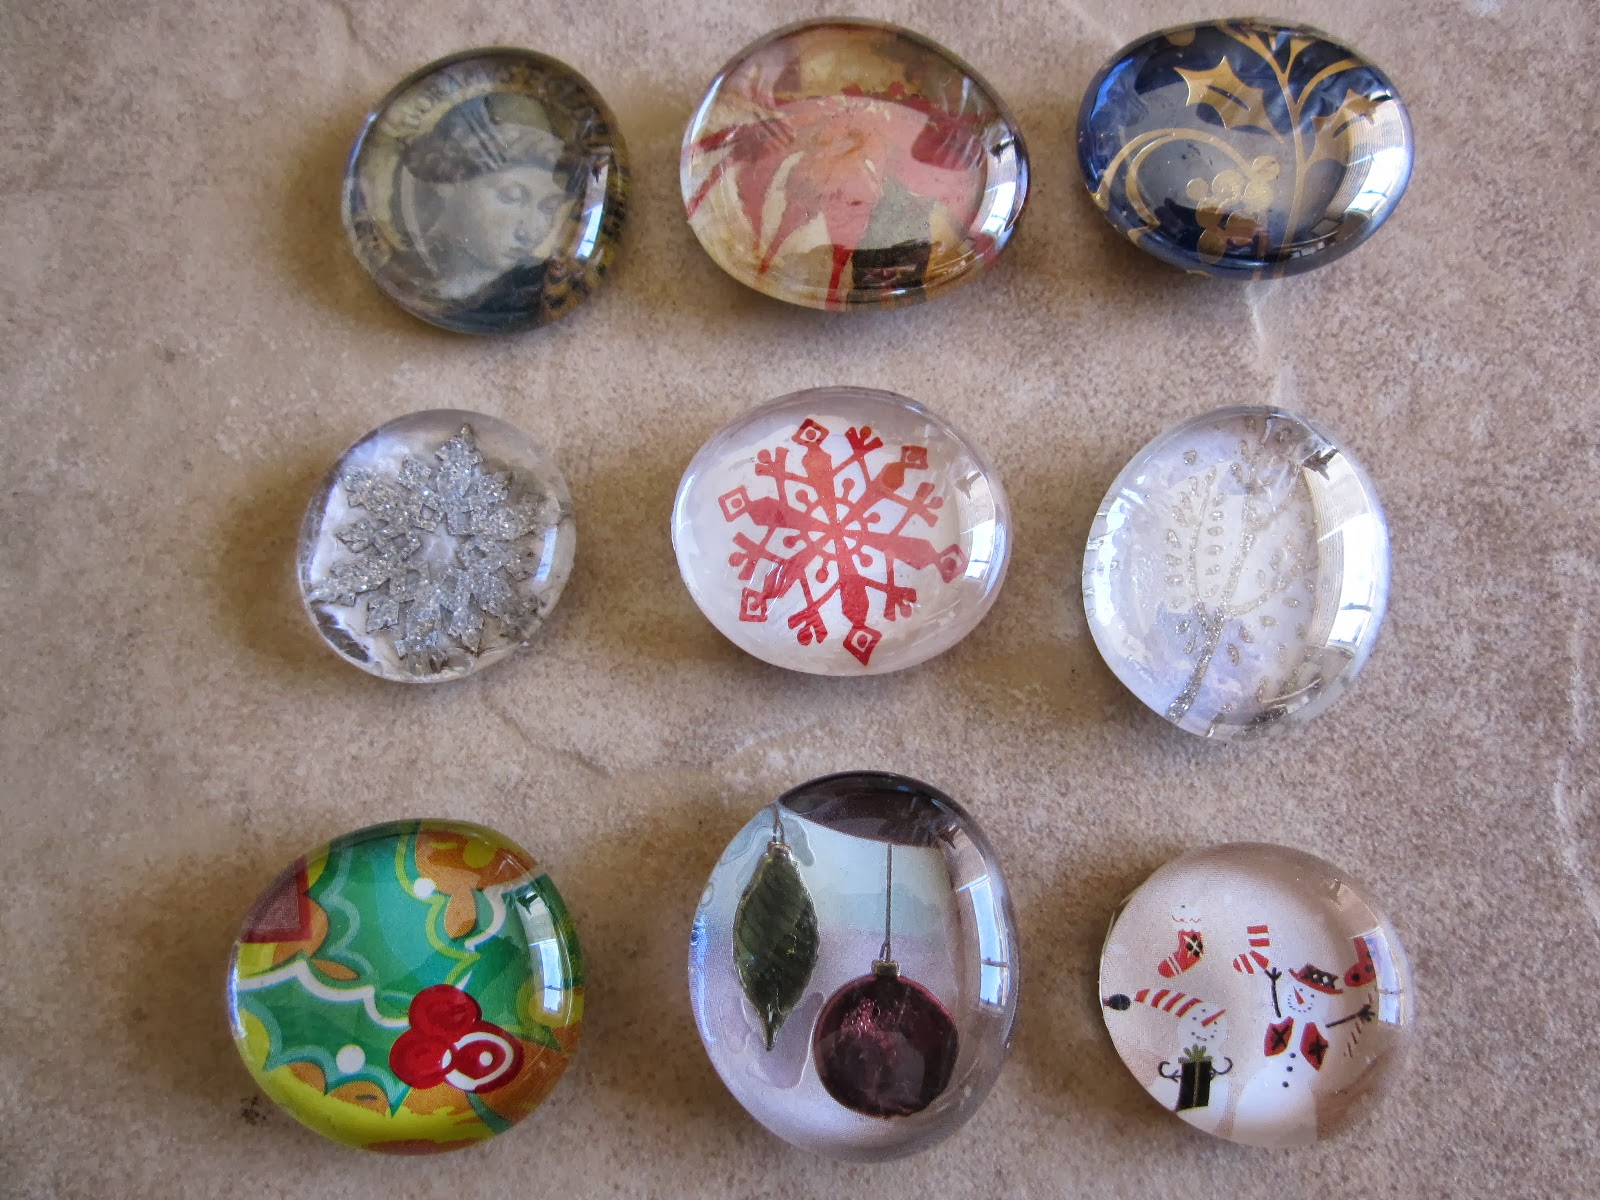 Crafts glass stone magnets and decorative glass stones for Crafts using stones